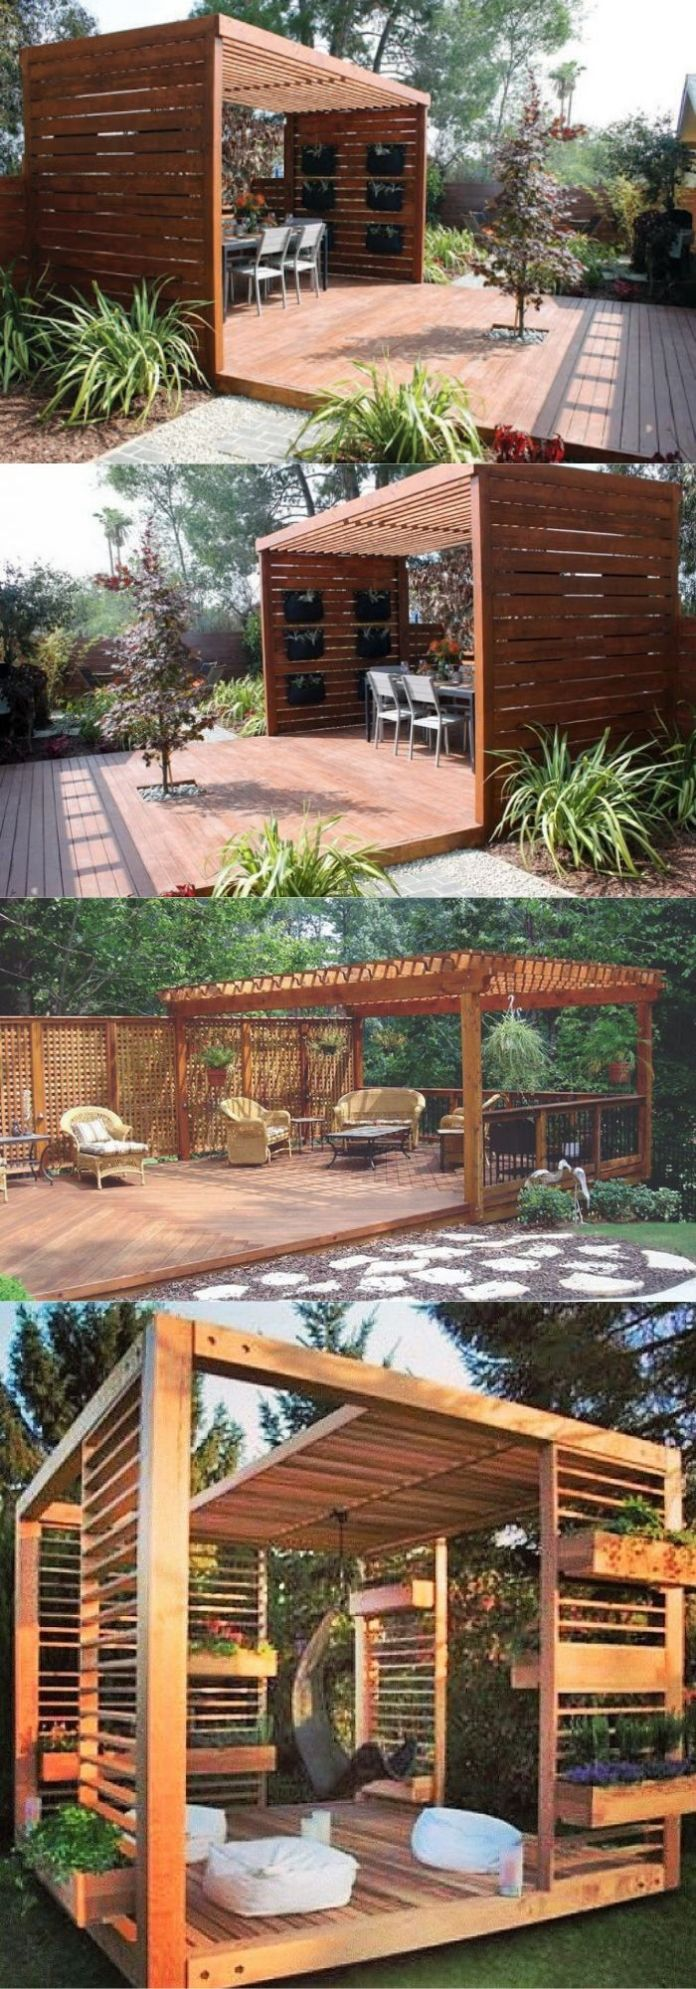 21 Easy and Inexpensive Floating Deck Ideas For Your Backyard on Simple Back Deck Ideas id=96874